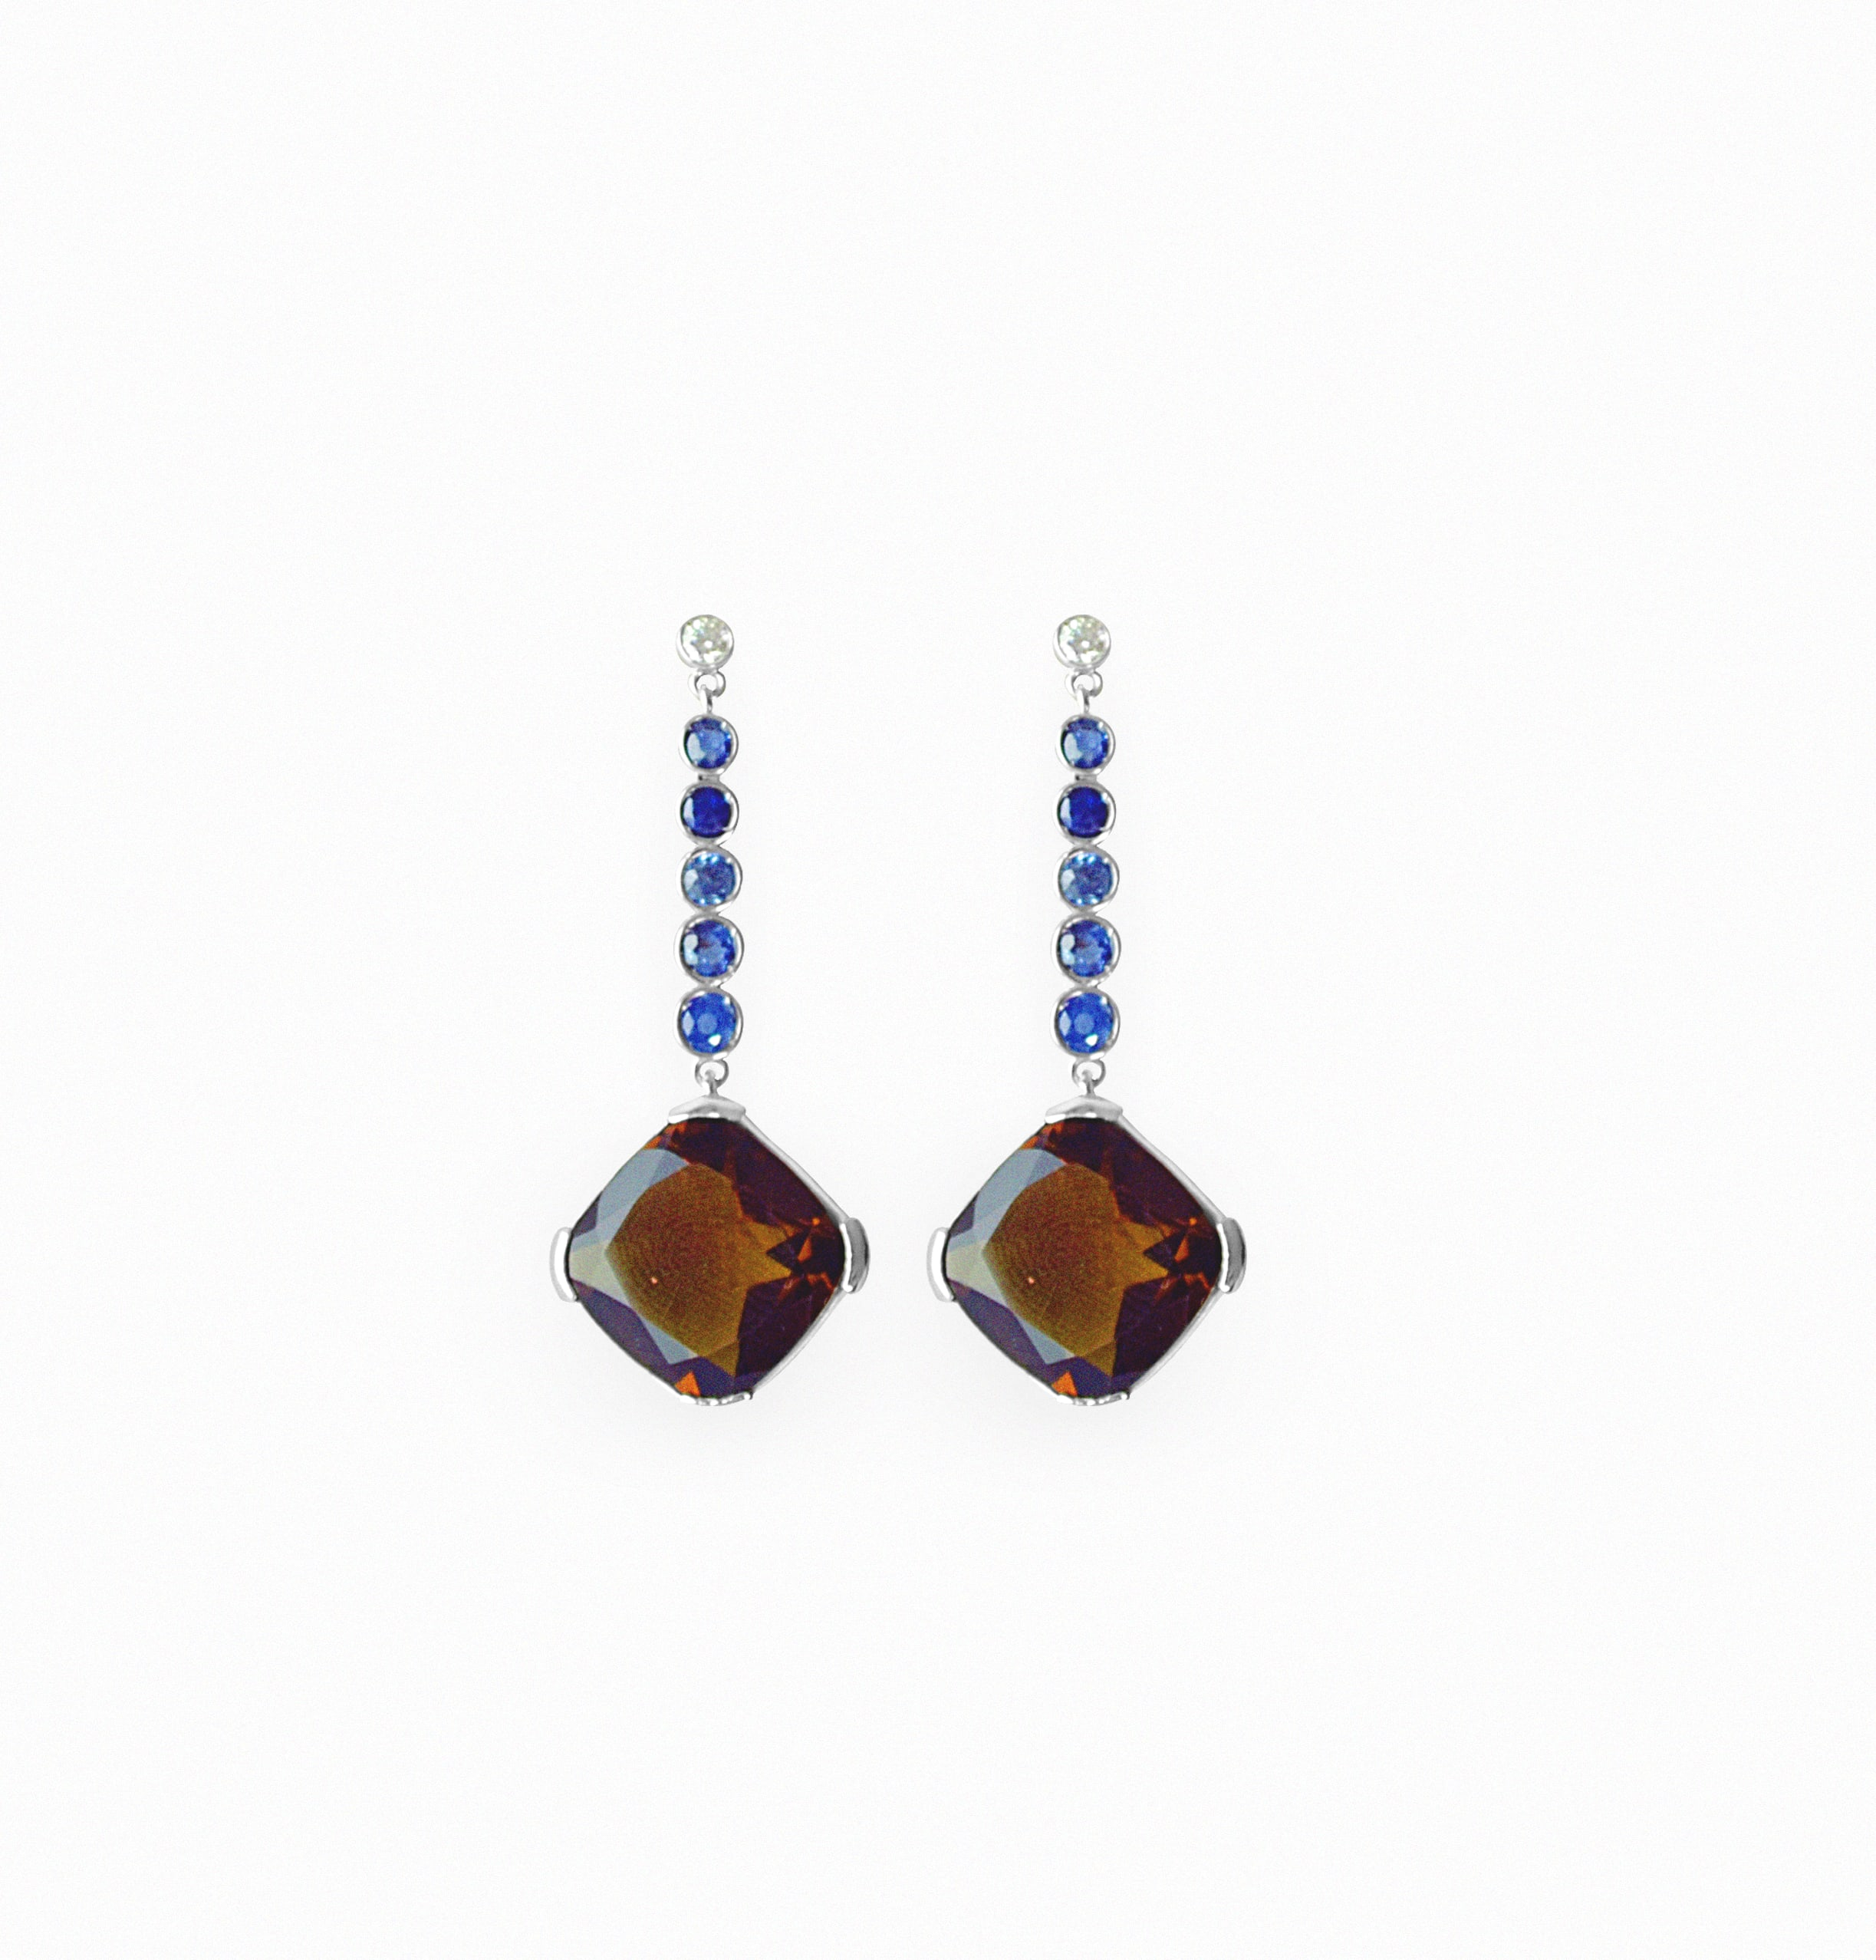 Earrings in white gold and sapphires with smoky quartz